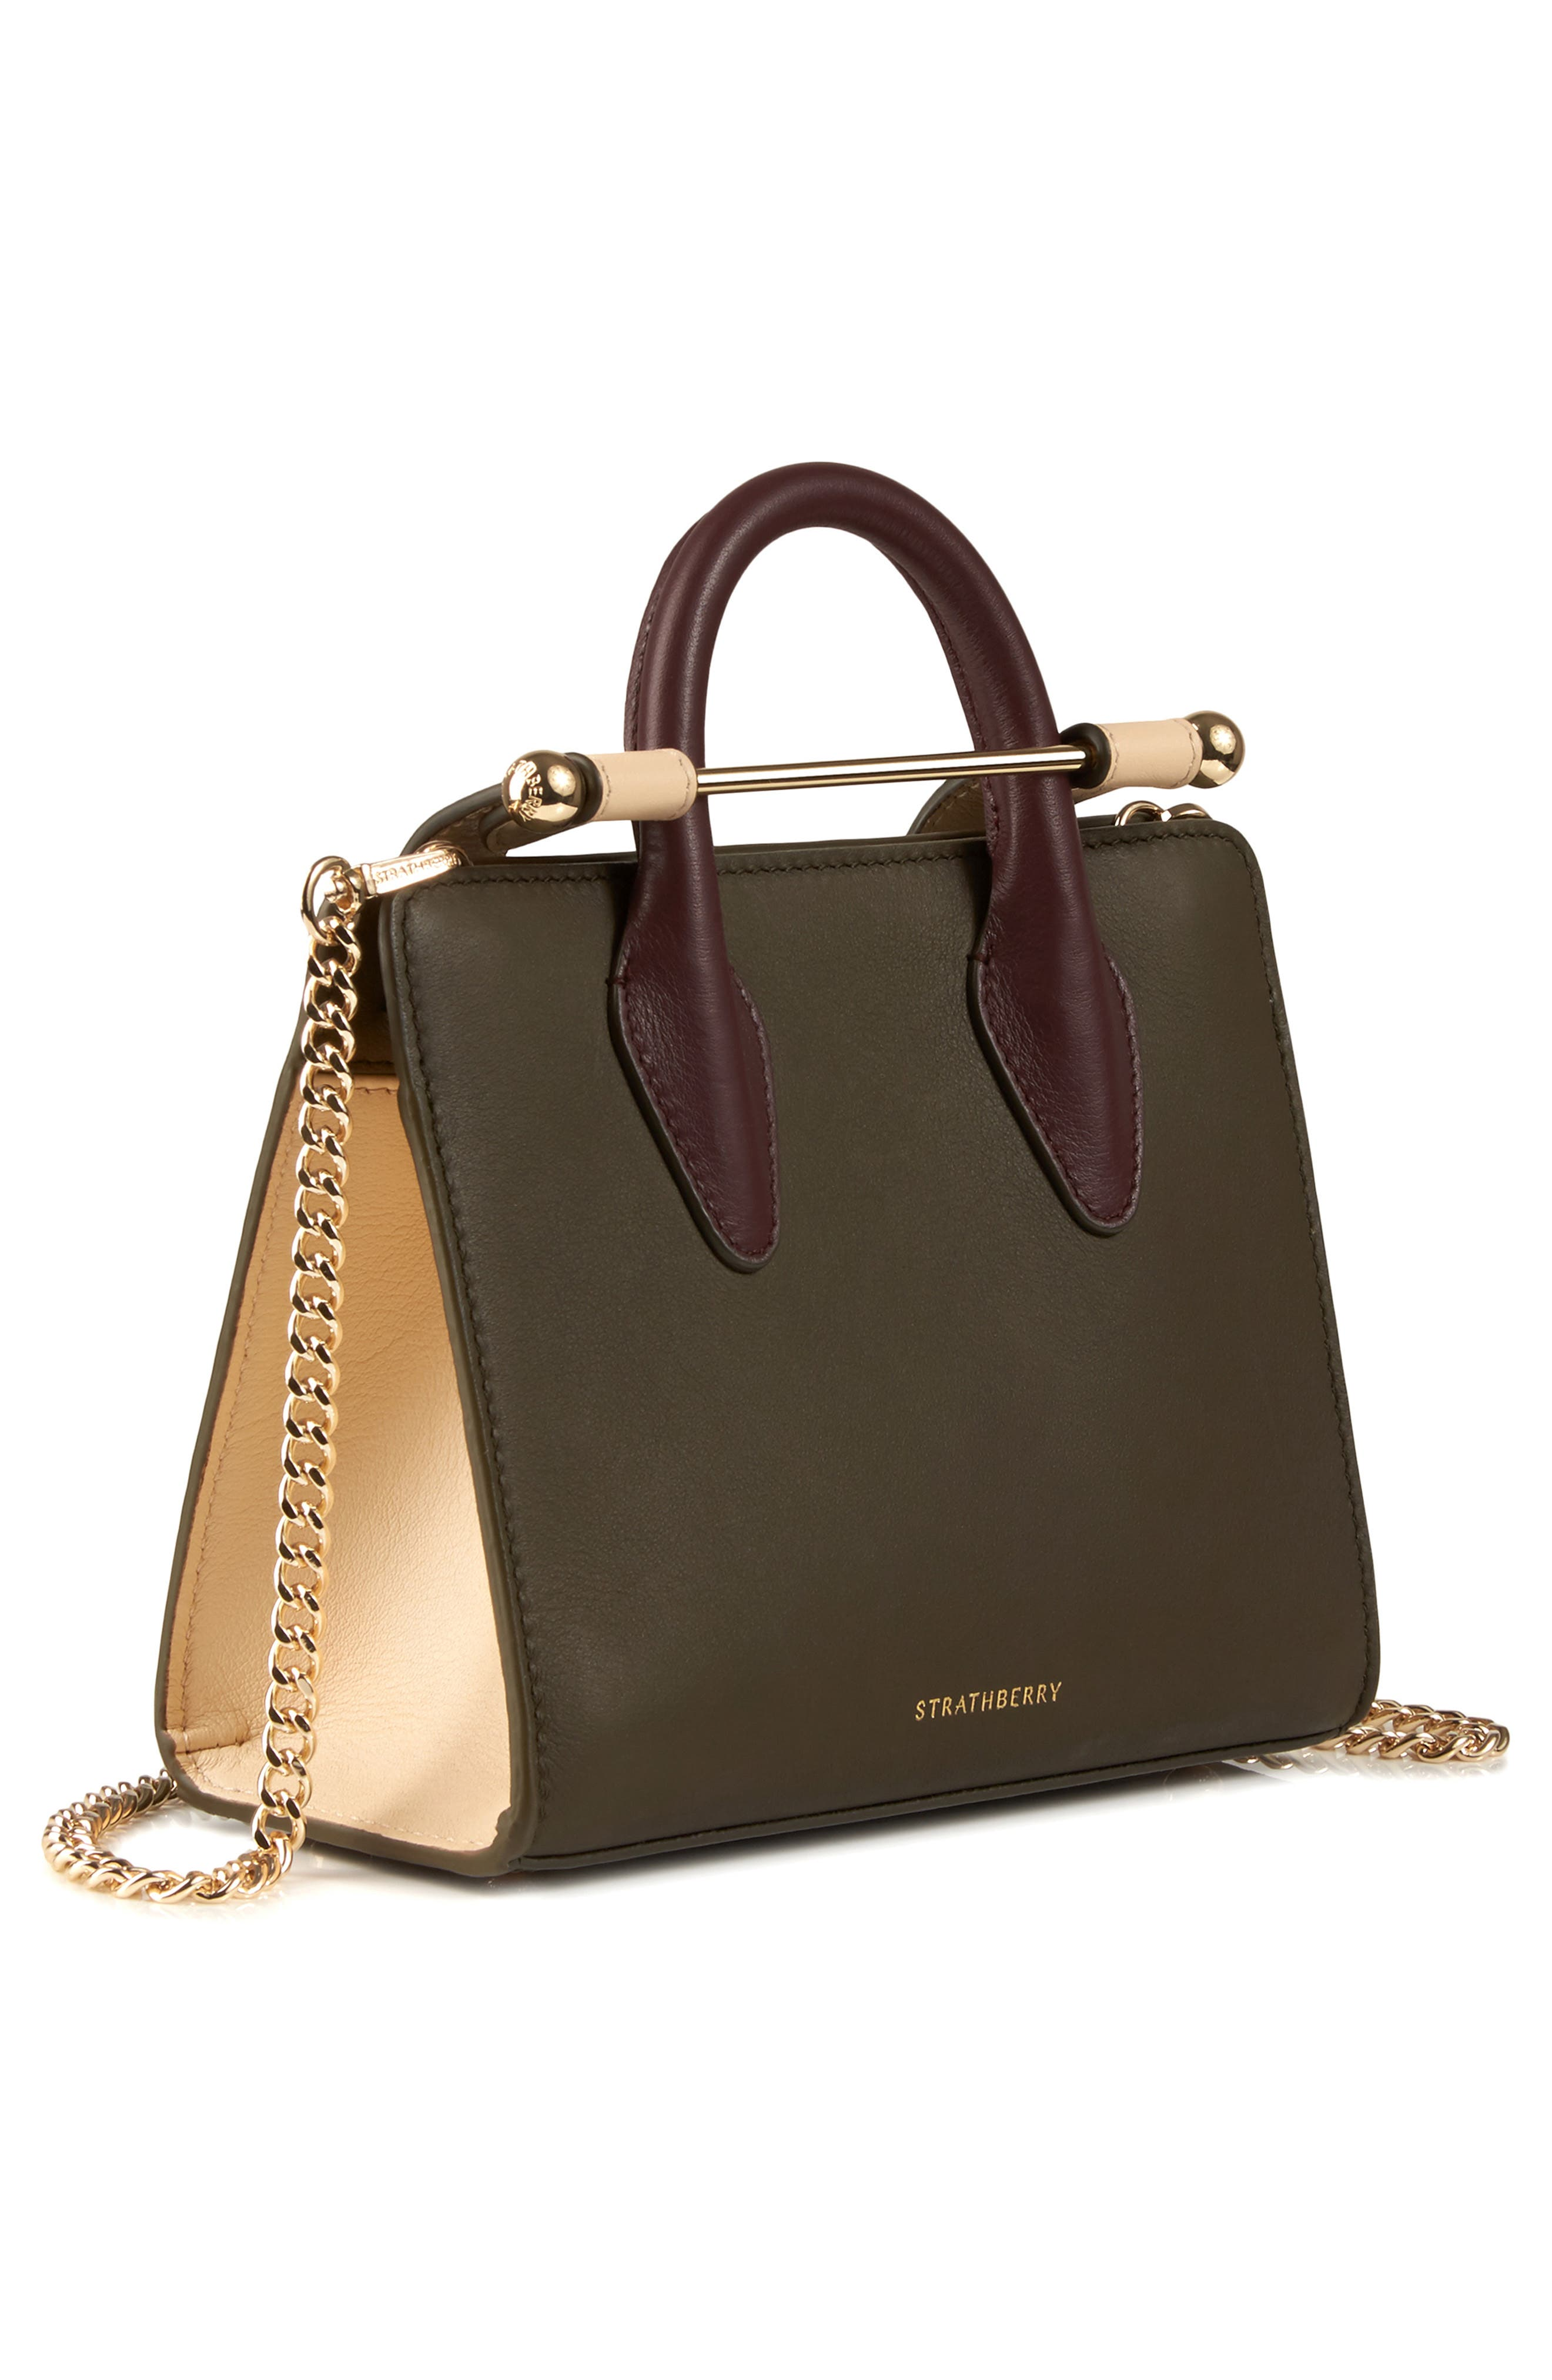 STRATHBERRY, Nano Tricolor Leather Satchel, Alternate thumbnail 4, color, FOREST/ SAND/ BURGUNDY